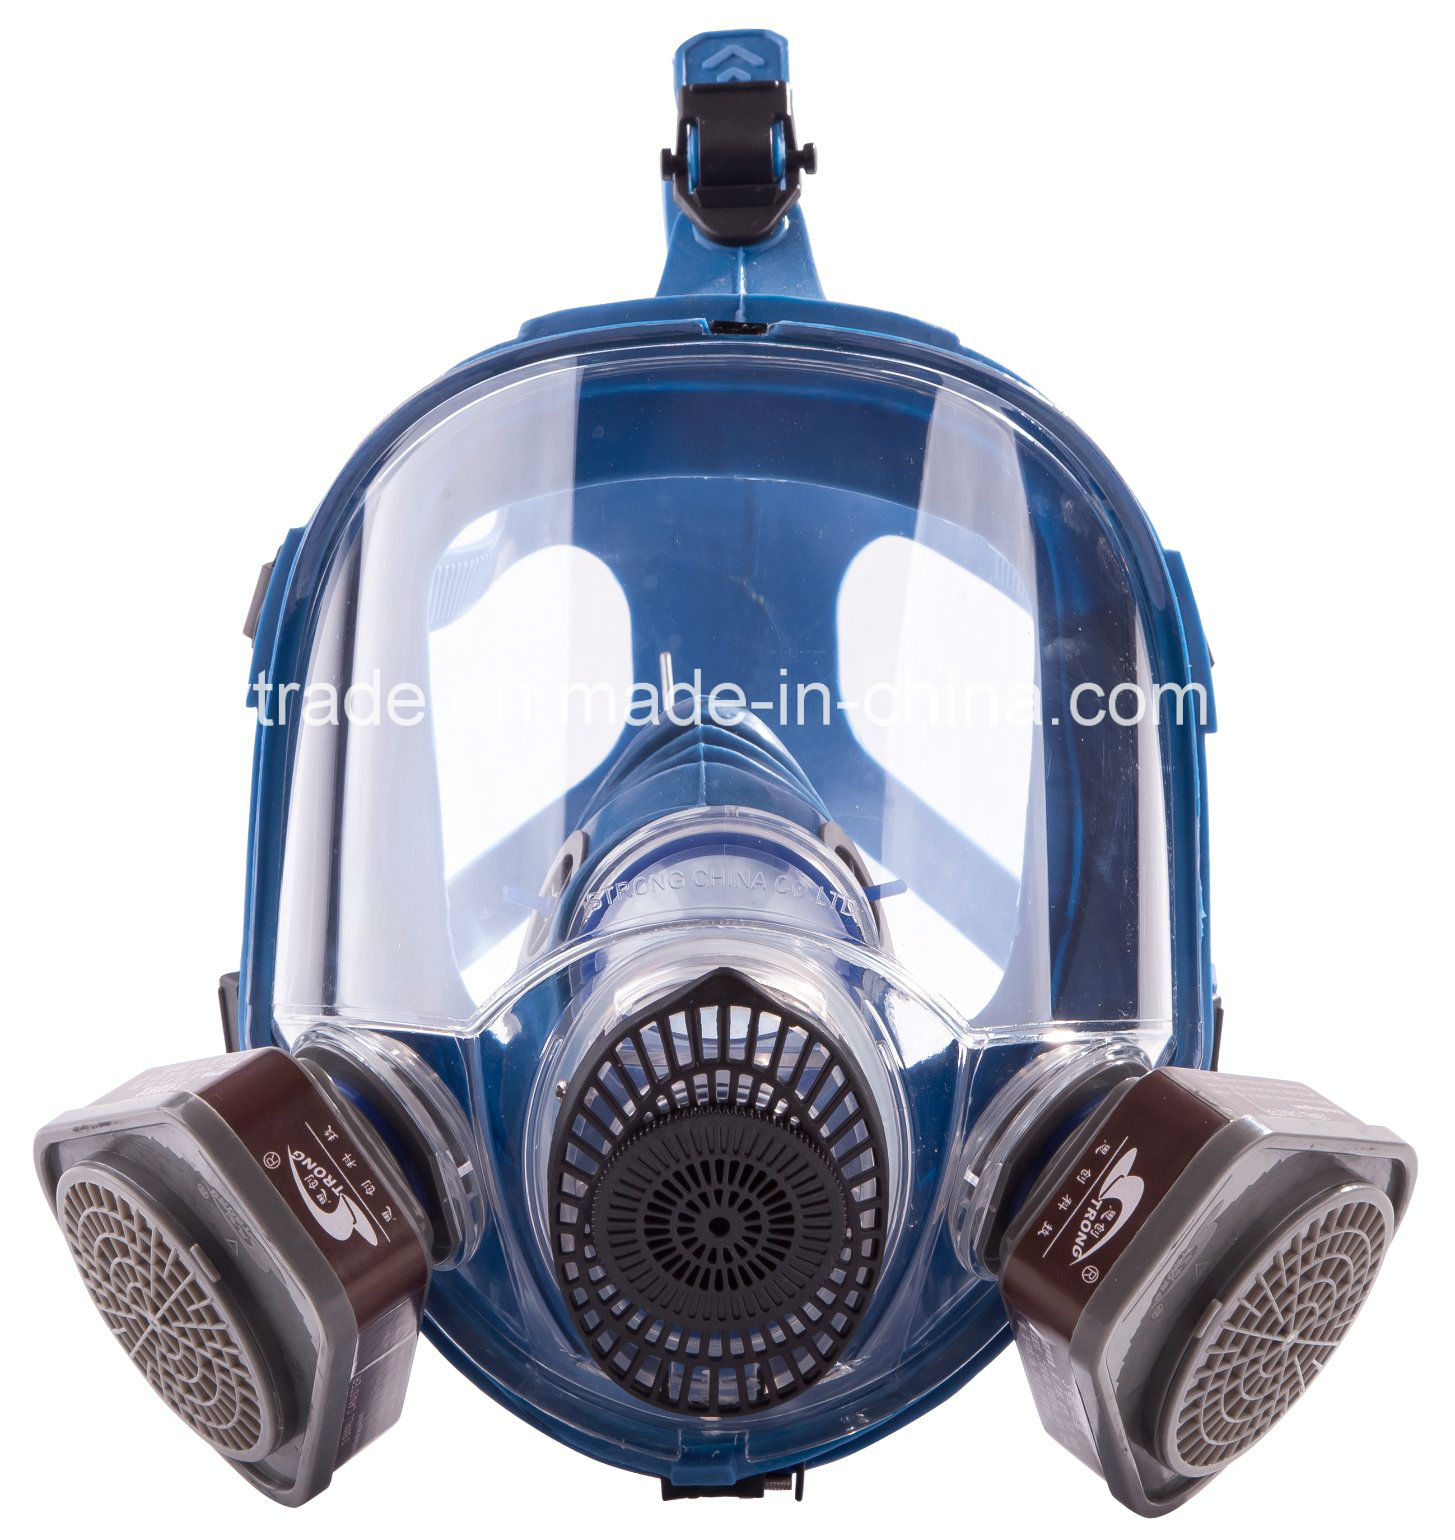 China's Supplier of High Quality Full Face Gas Mask